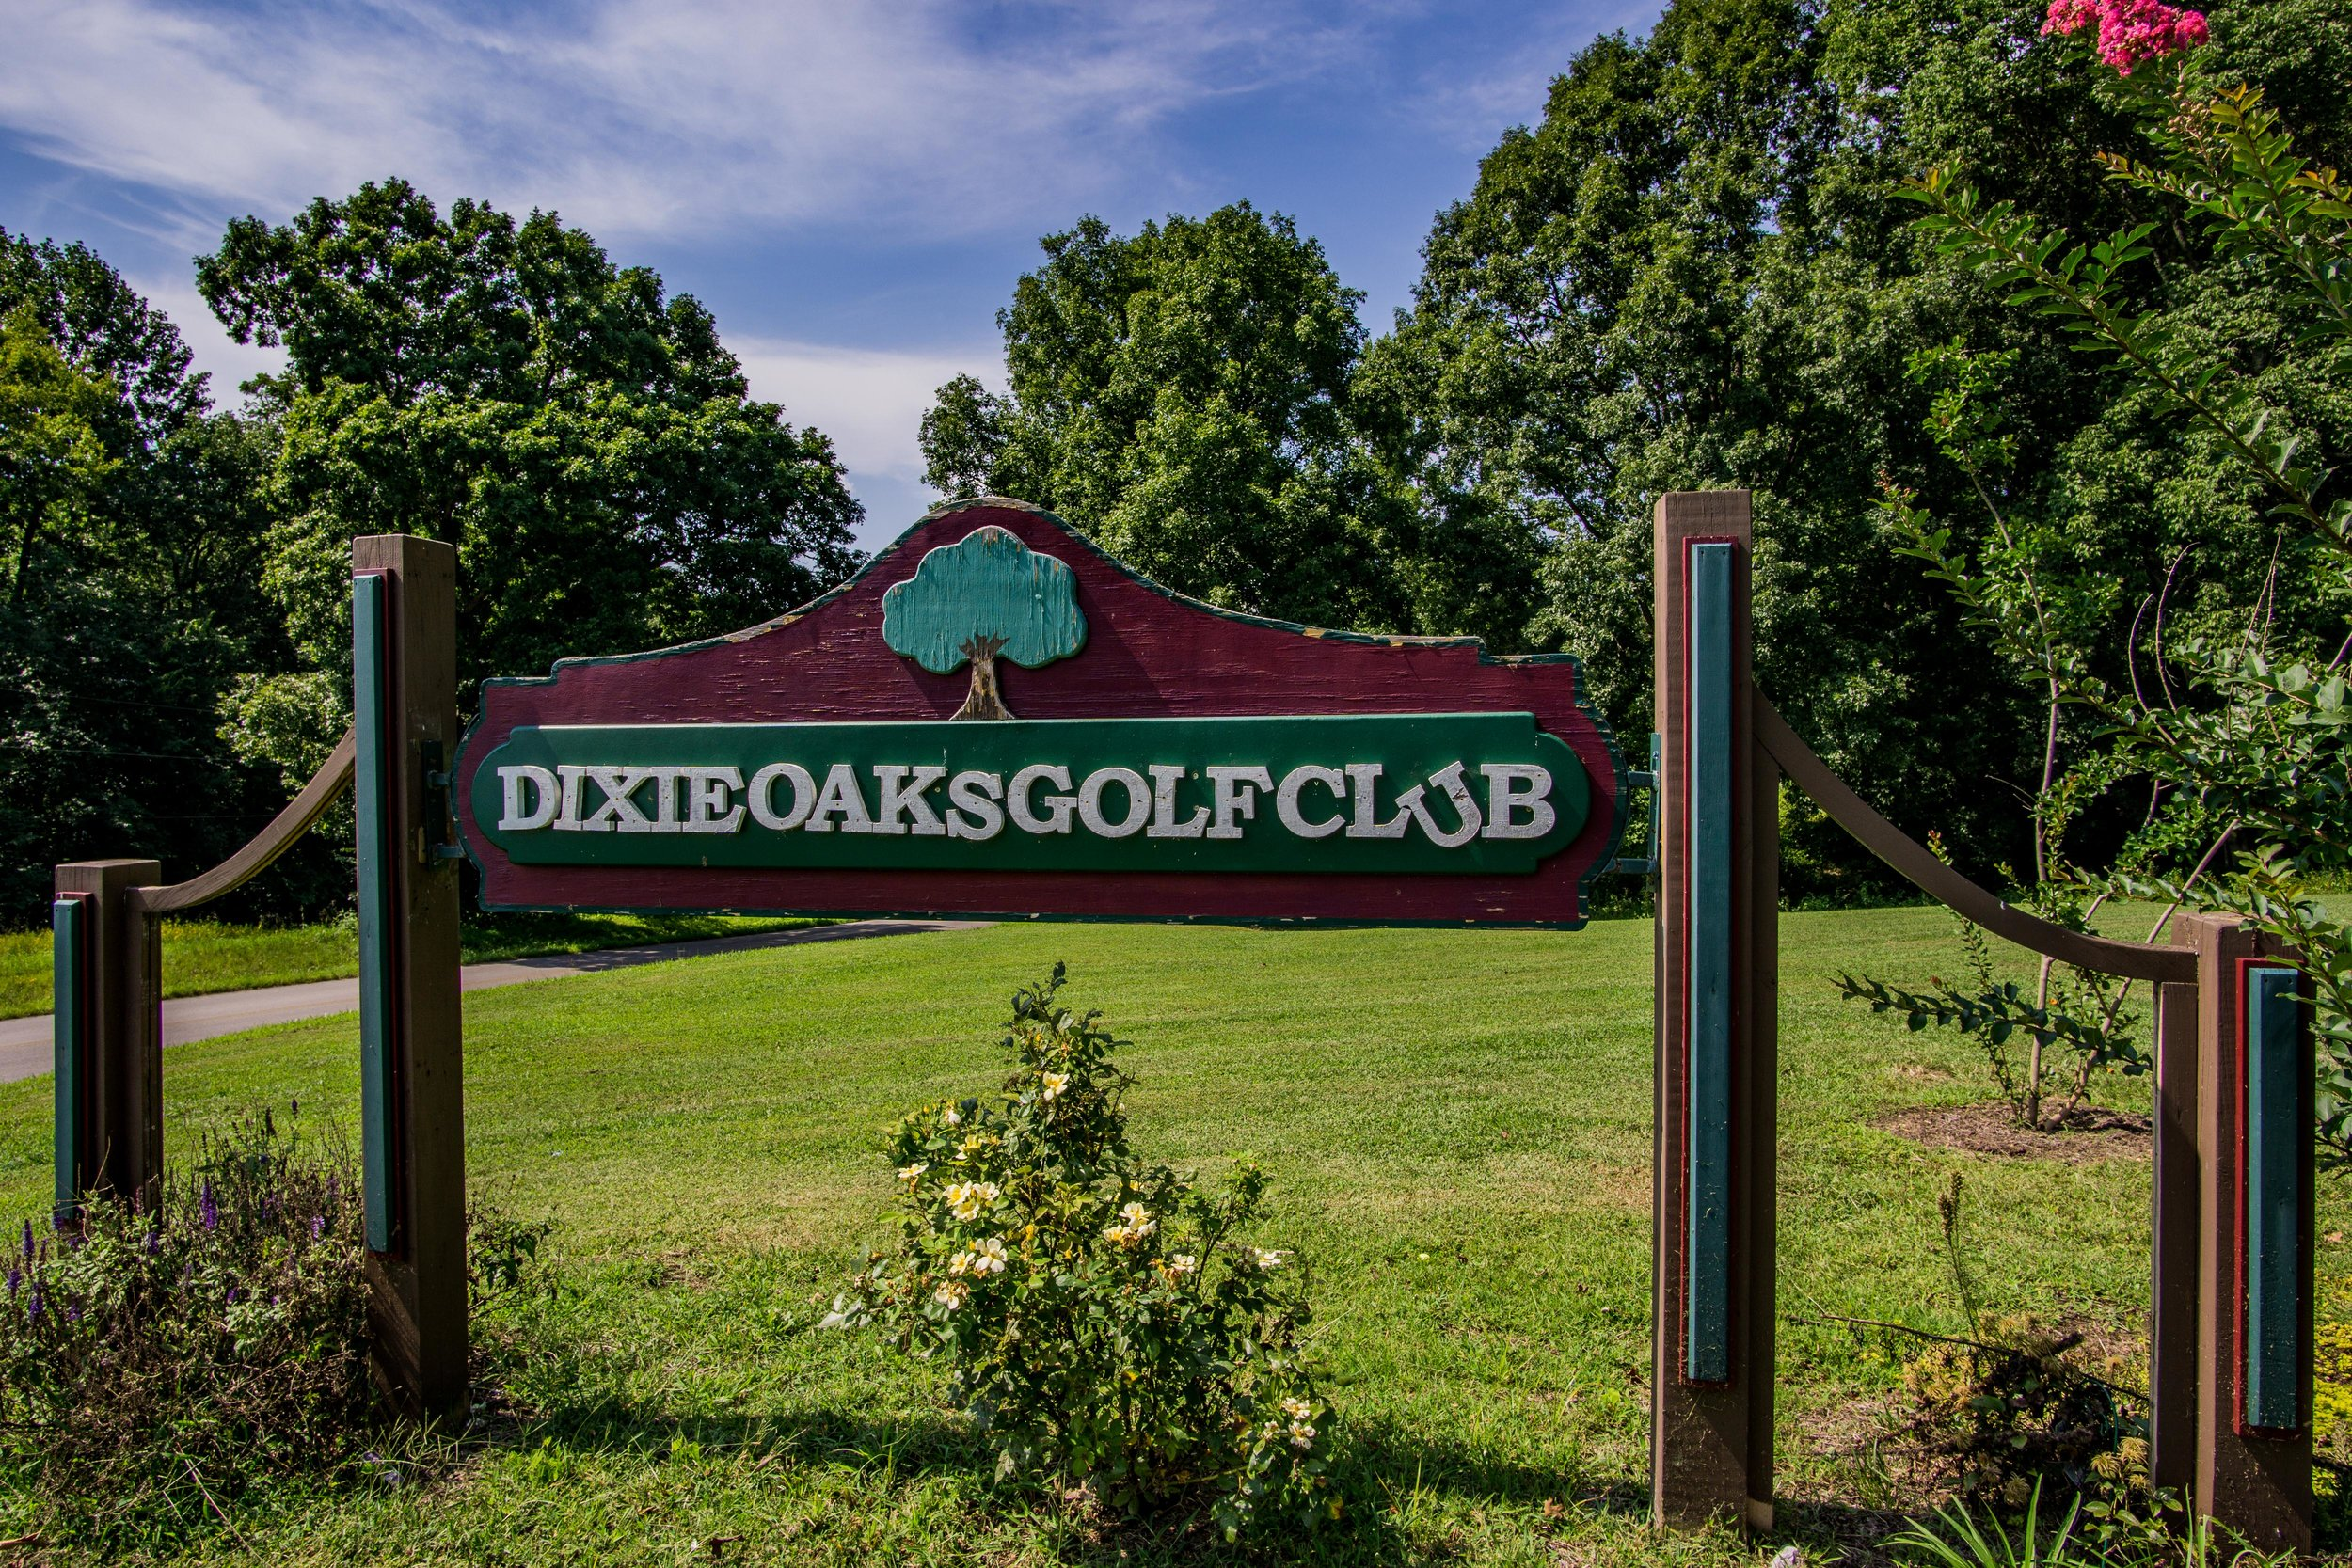 Dixie Oaks Golf Club Summertown TN Real Estate Photographer Pro -14.jpg